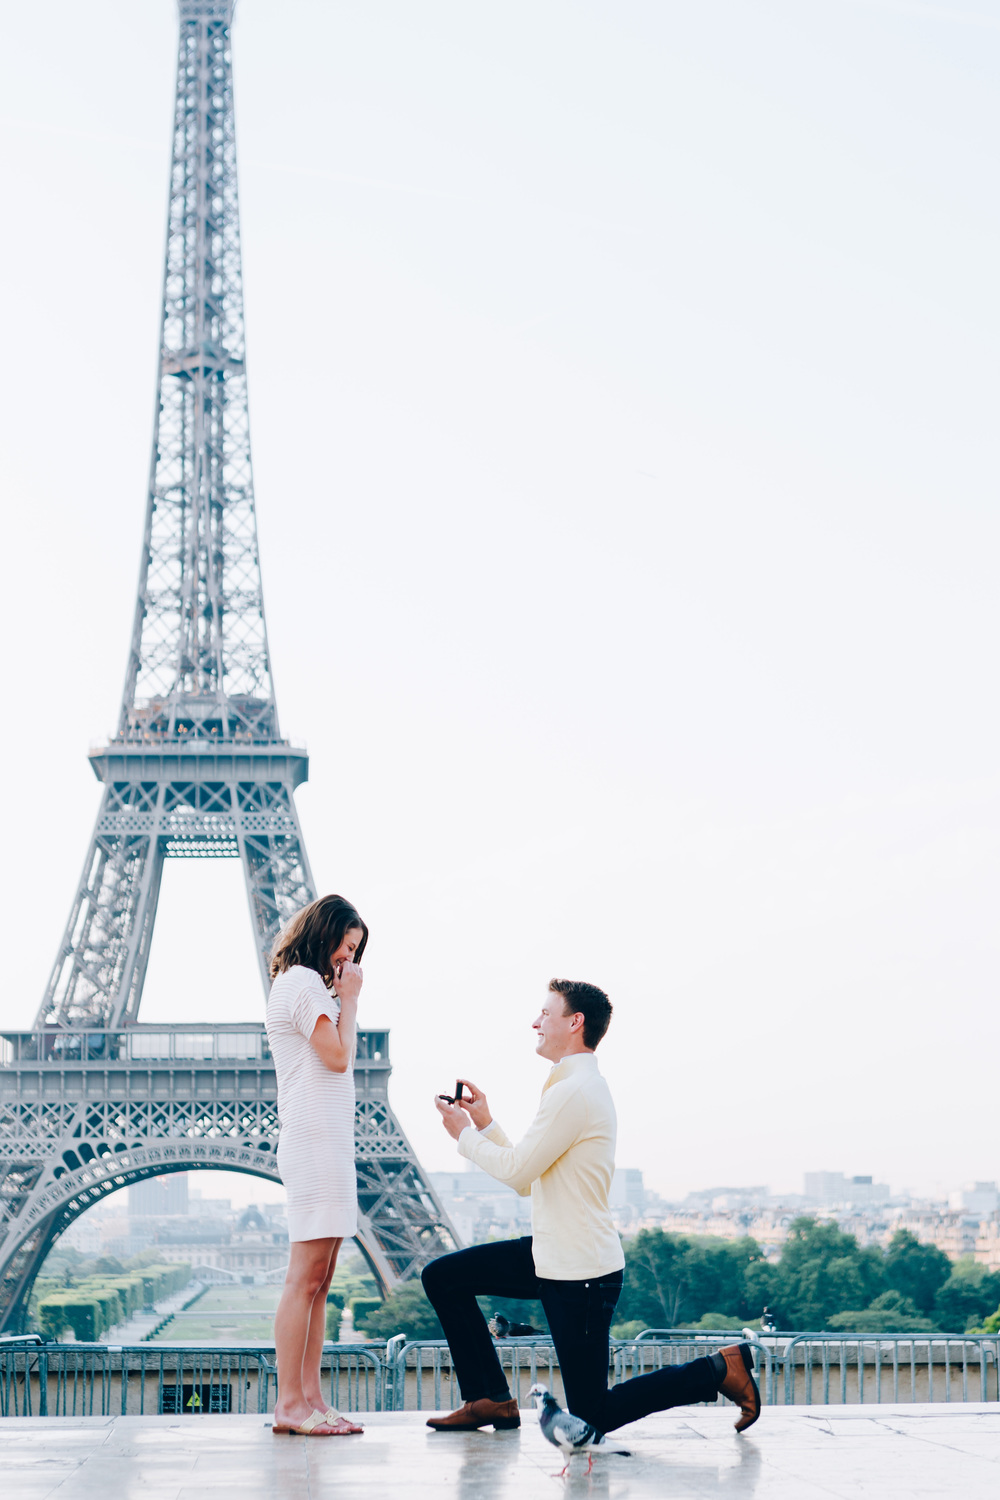 Paris-Photographer-Eiffel-Tower-Surprise-Proposal-She-Said-Yes-Engagement-Ring-Iheartparisfr.jpg